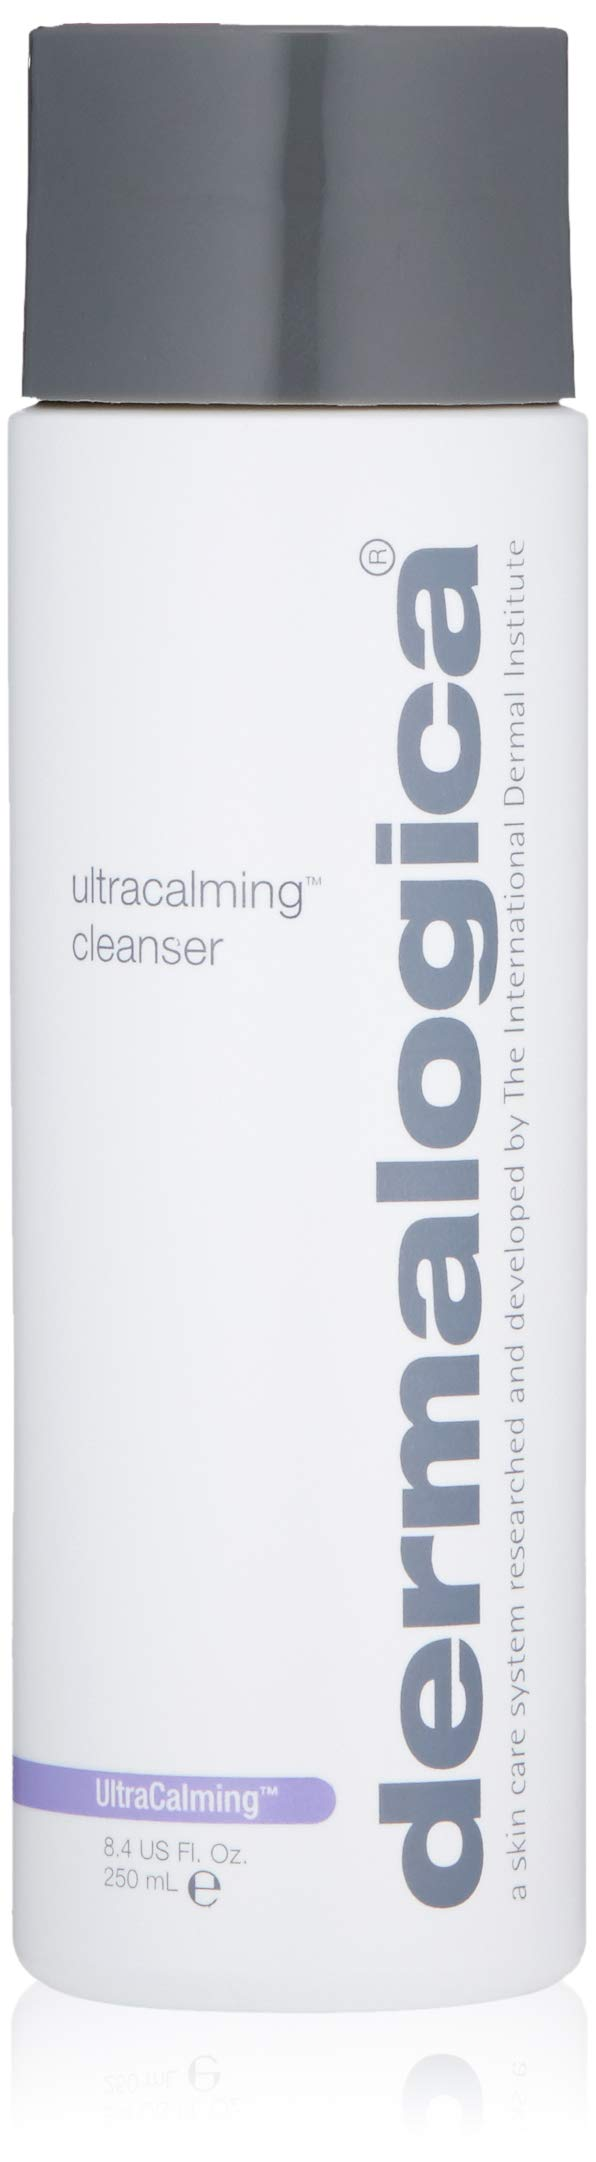 Dermalogica Ultracalming Face and Eye Cleanser, 8.4 Fl Oz